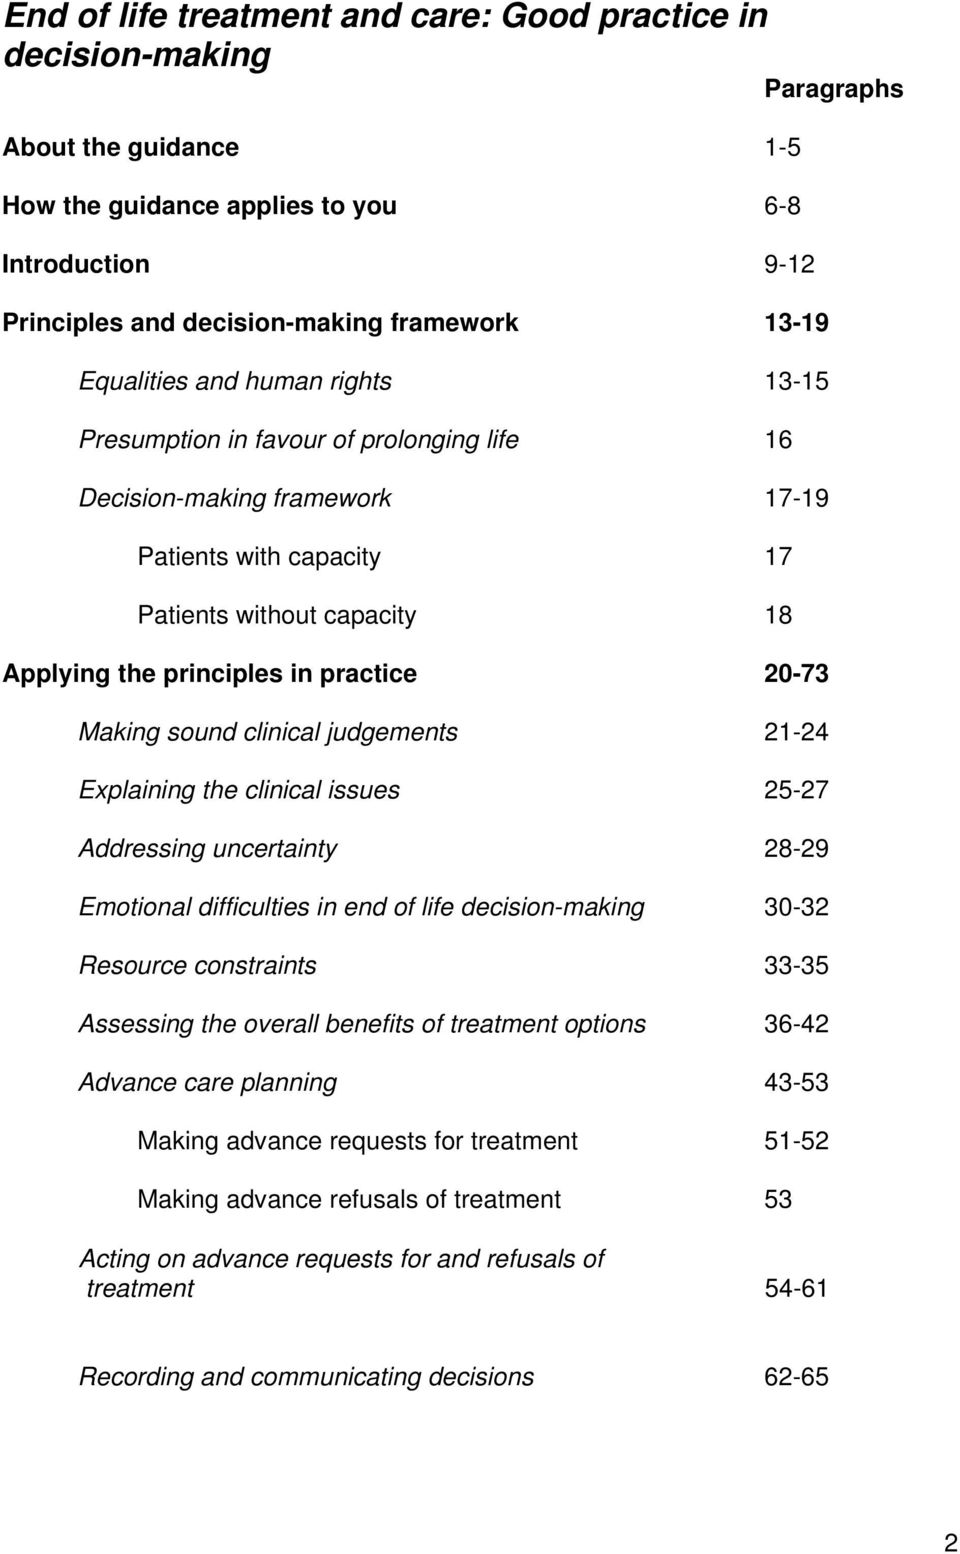 practice 20-73 Making sound clinical judgements 21-24 Explaining the clinical issues 25-27 Addressing uncertainty 28-29 Emotional difficulties in end of life decision-making 30-32 Resource